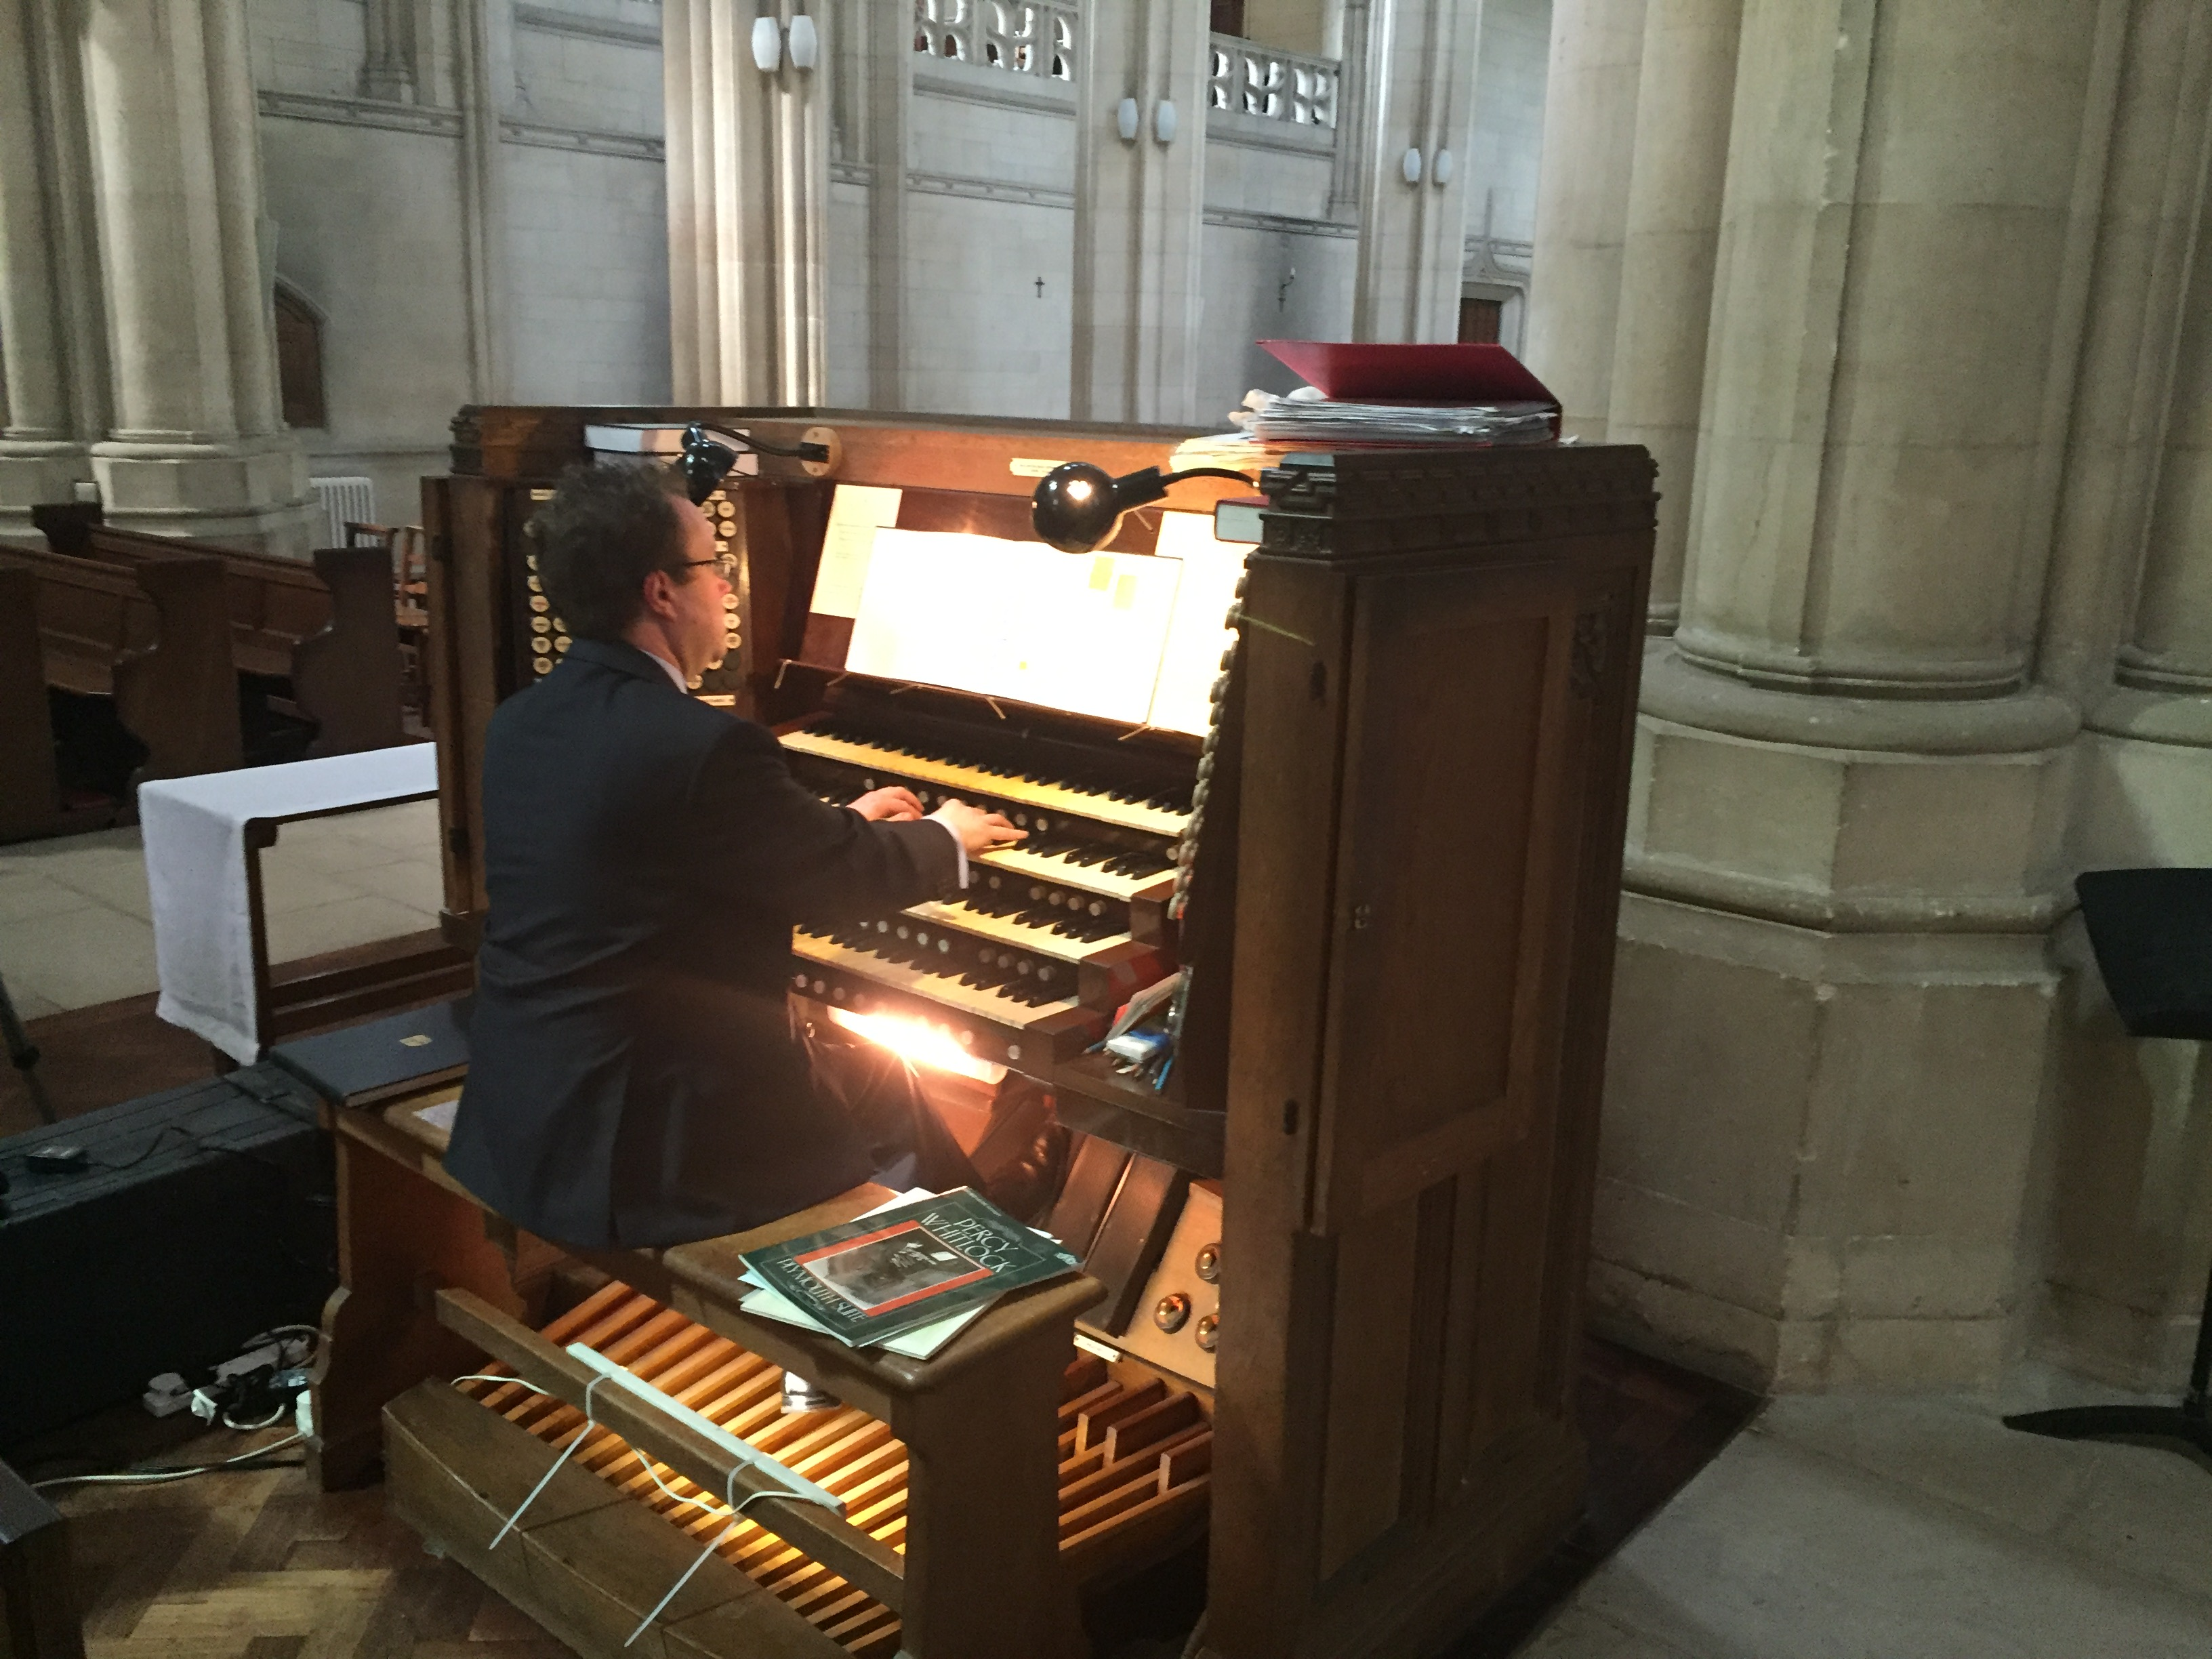 Organists Visit Downside